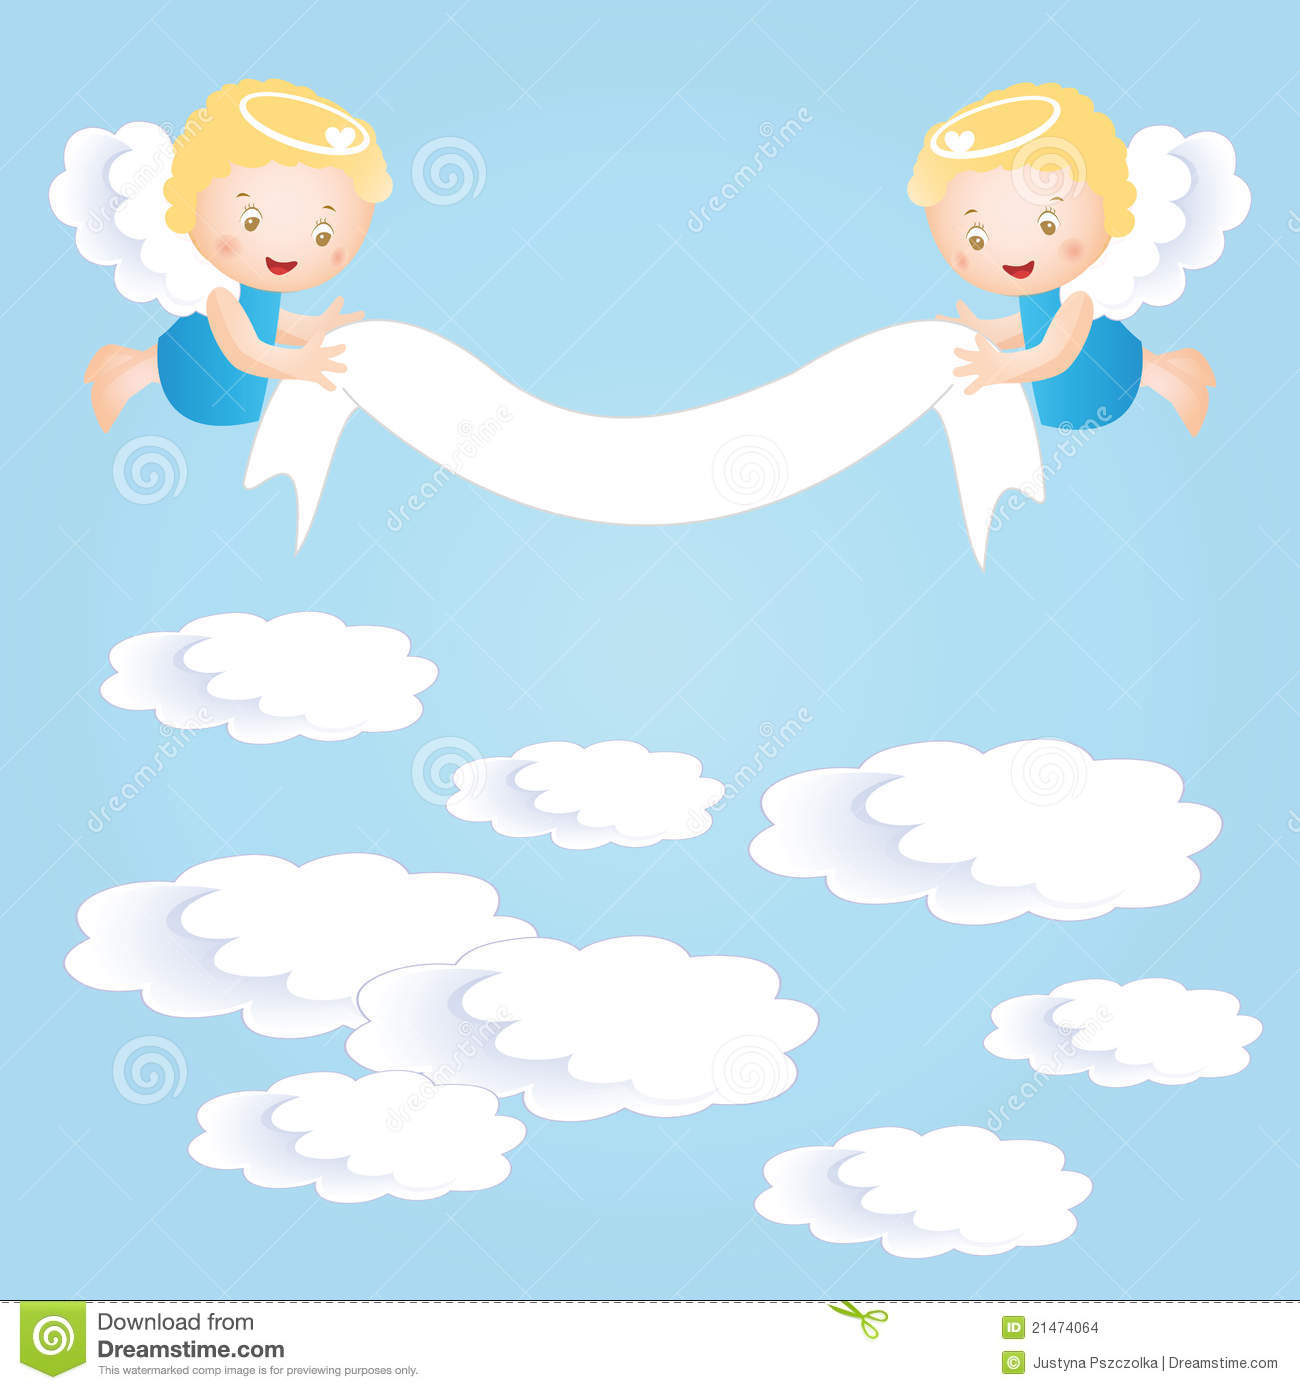 Christening Invitation Clipart.